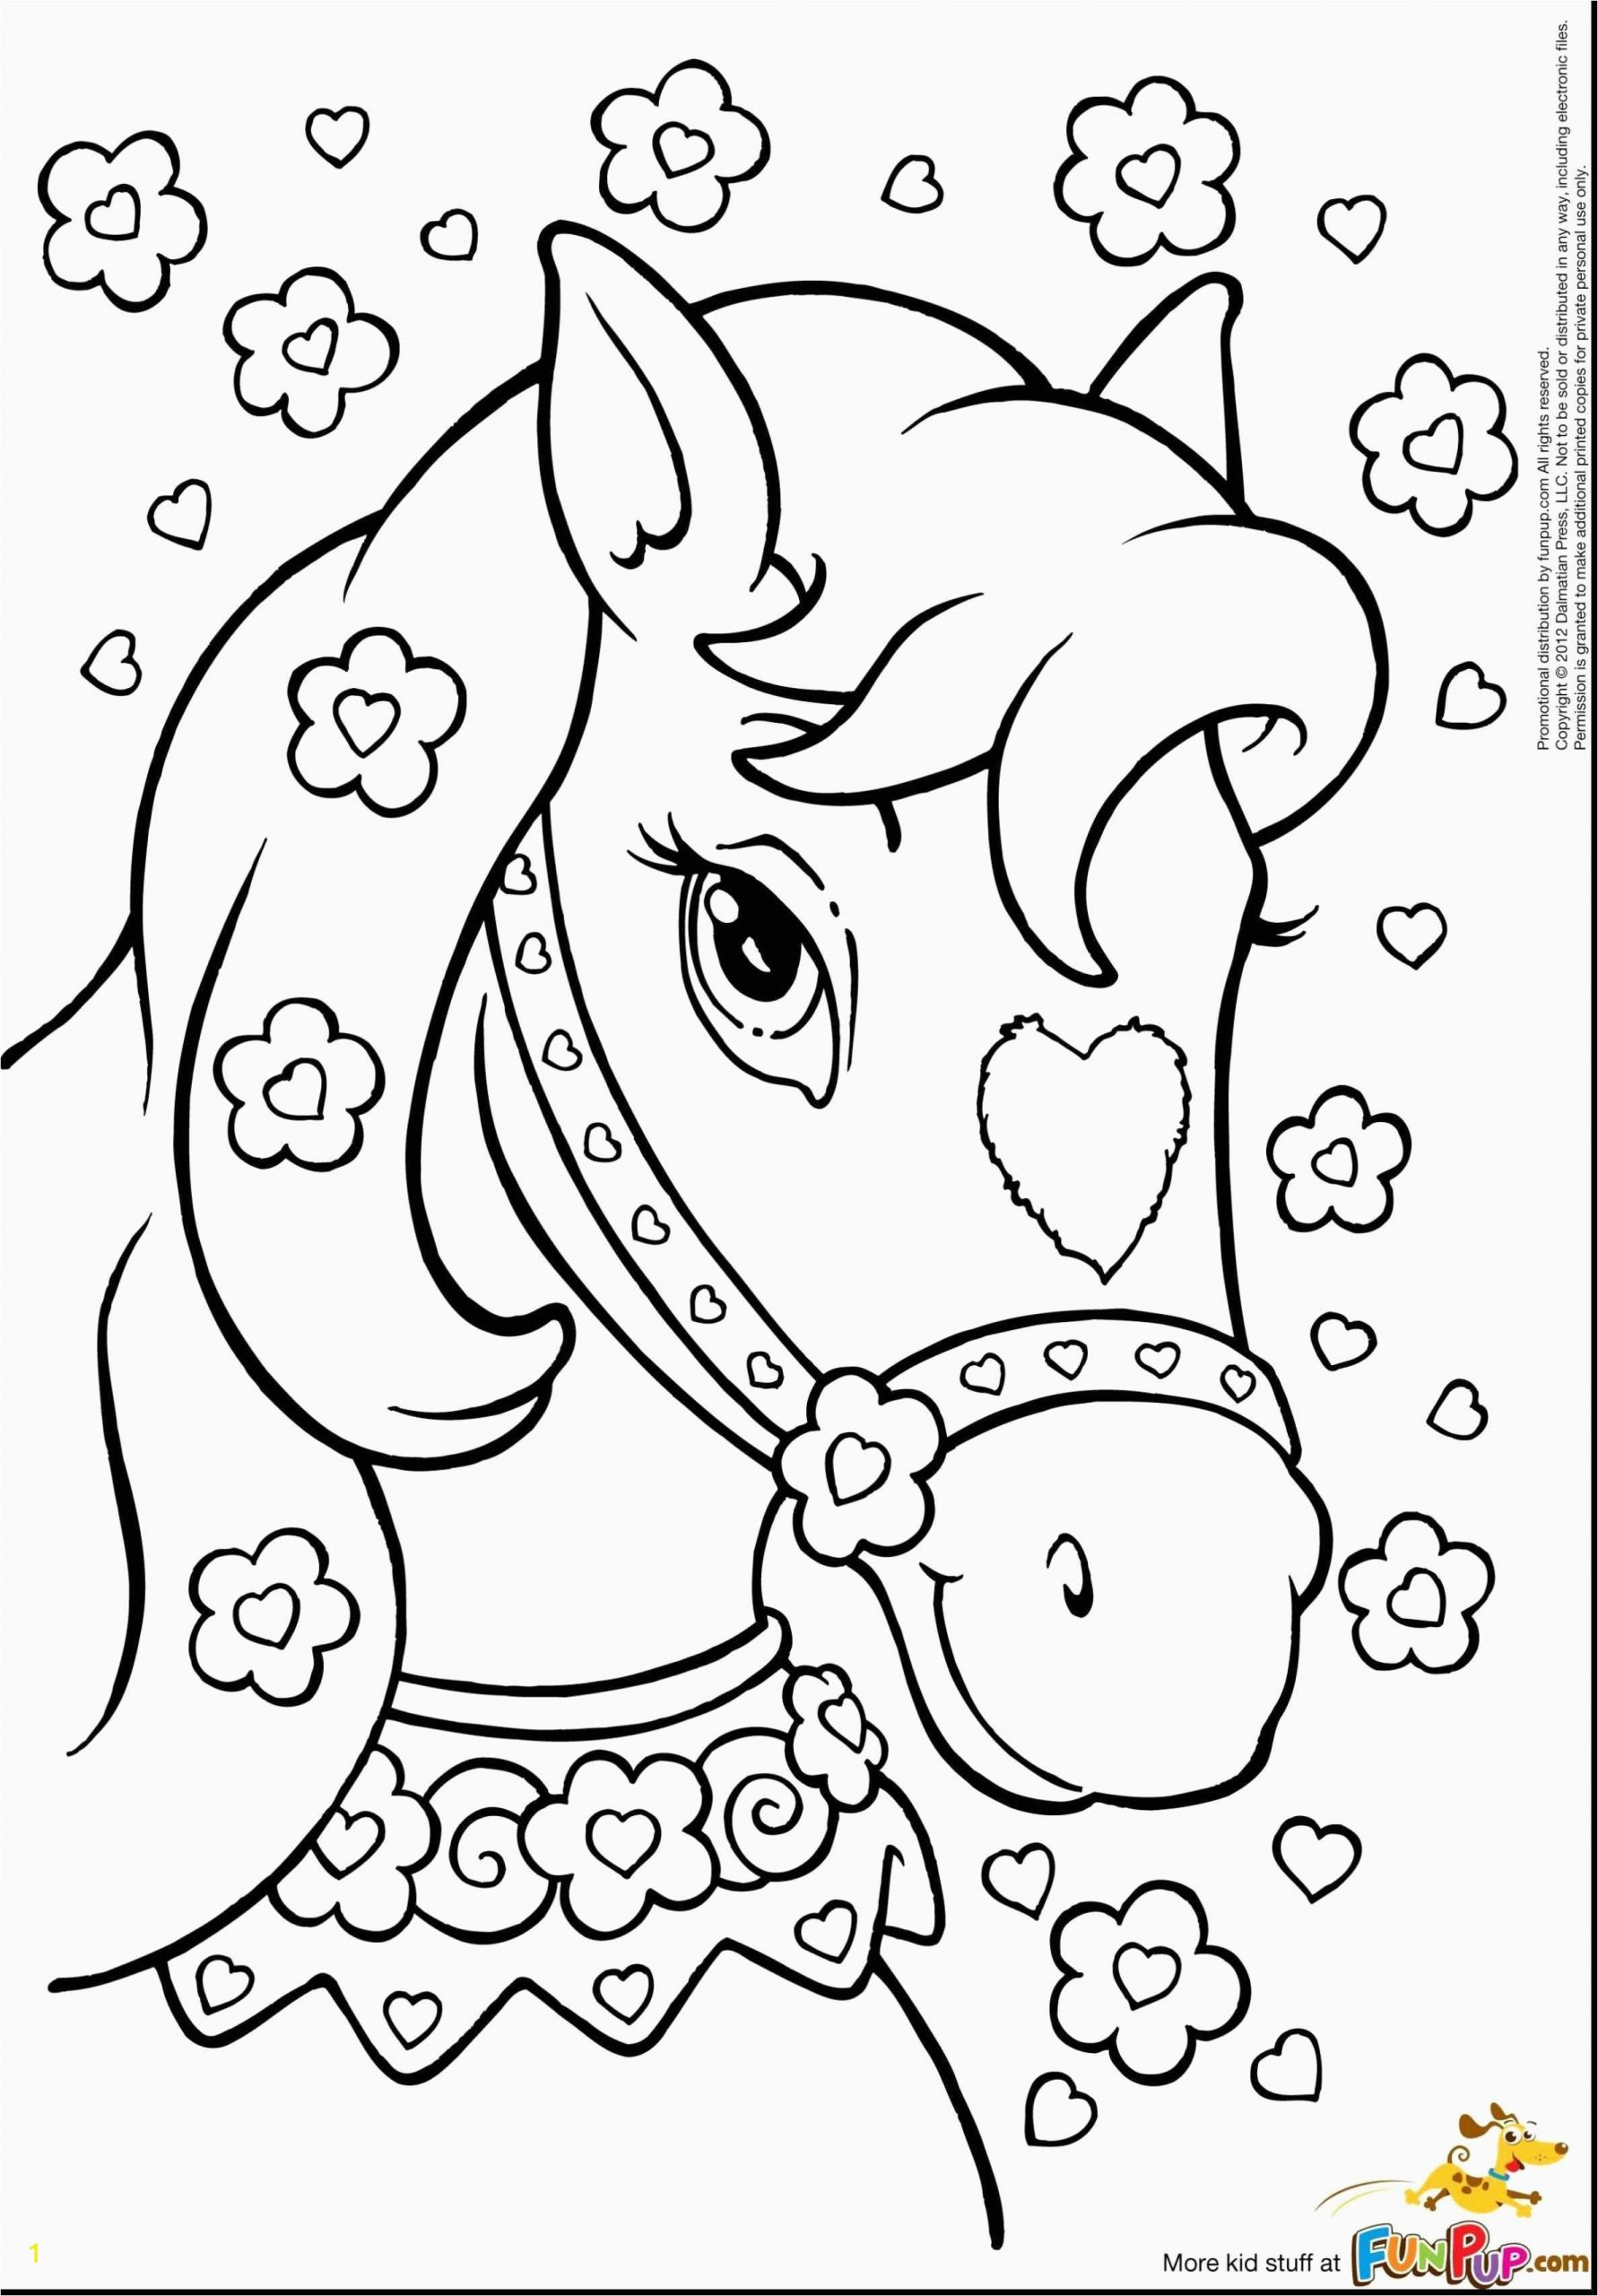 Easy Disney Coloring Pages Coloring African Animals Beautiful Disney Princesses